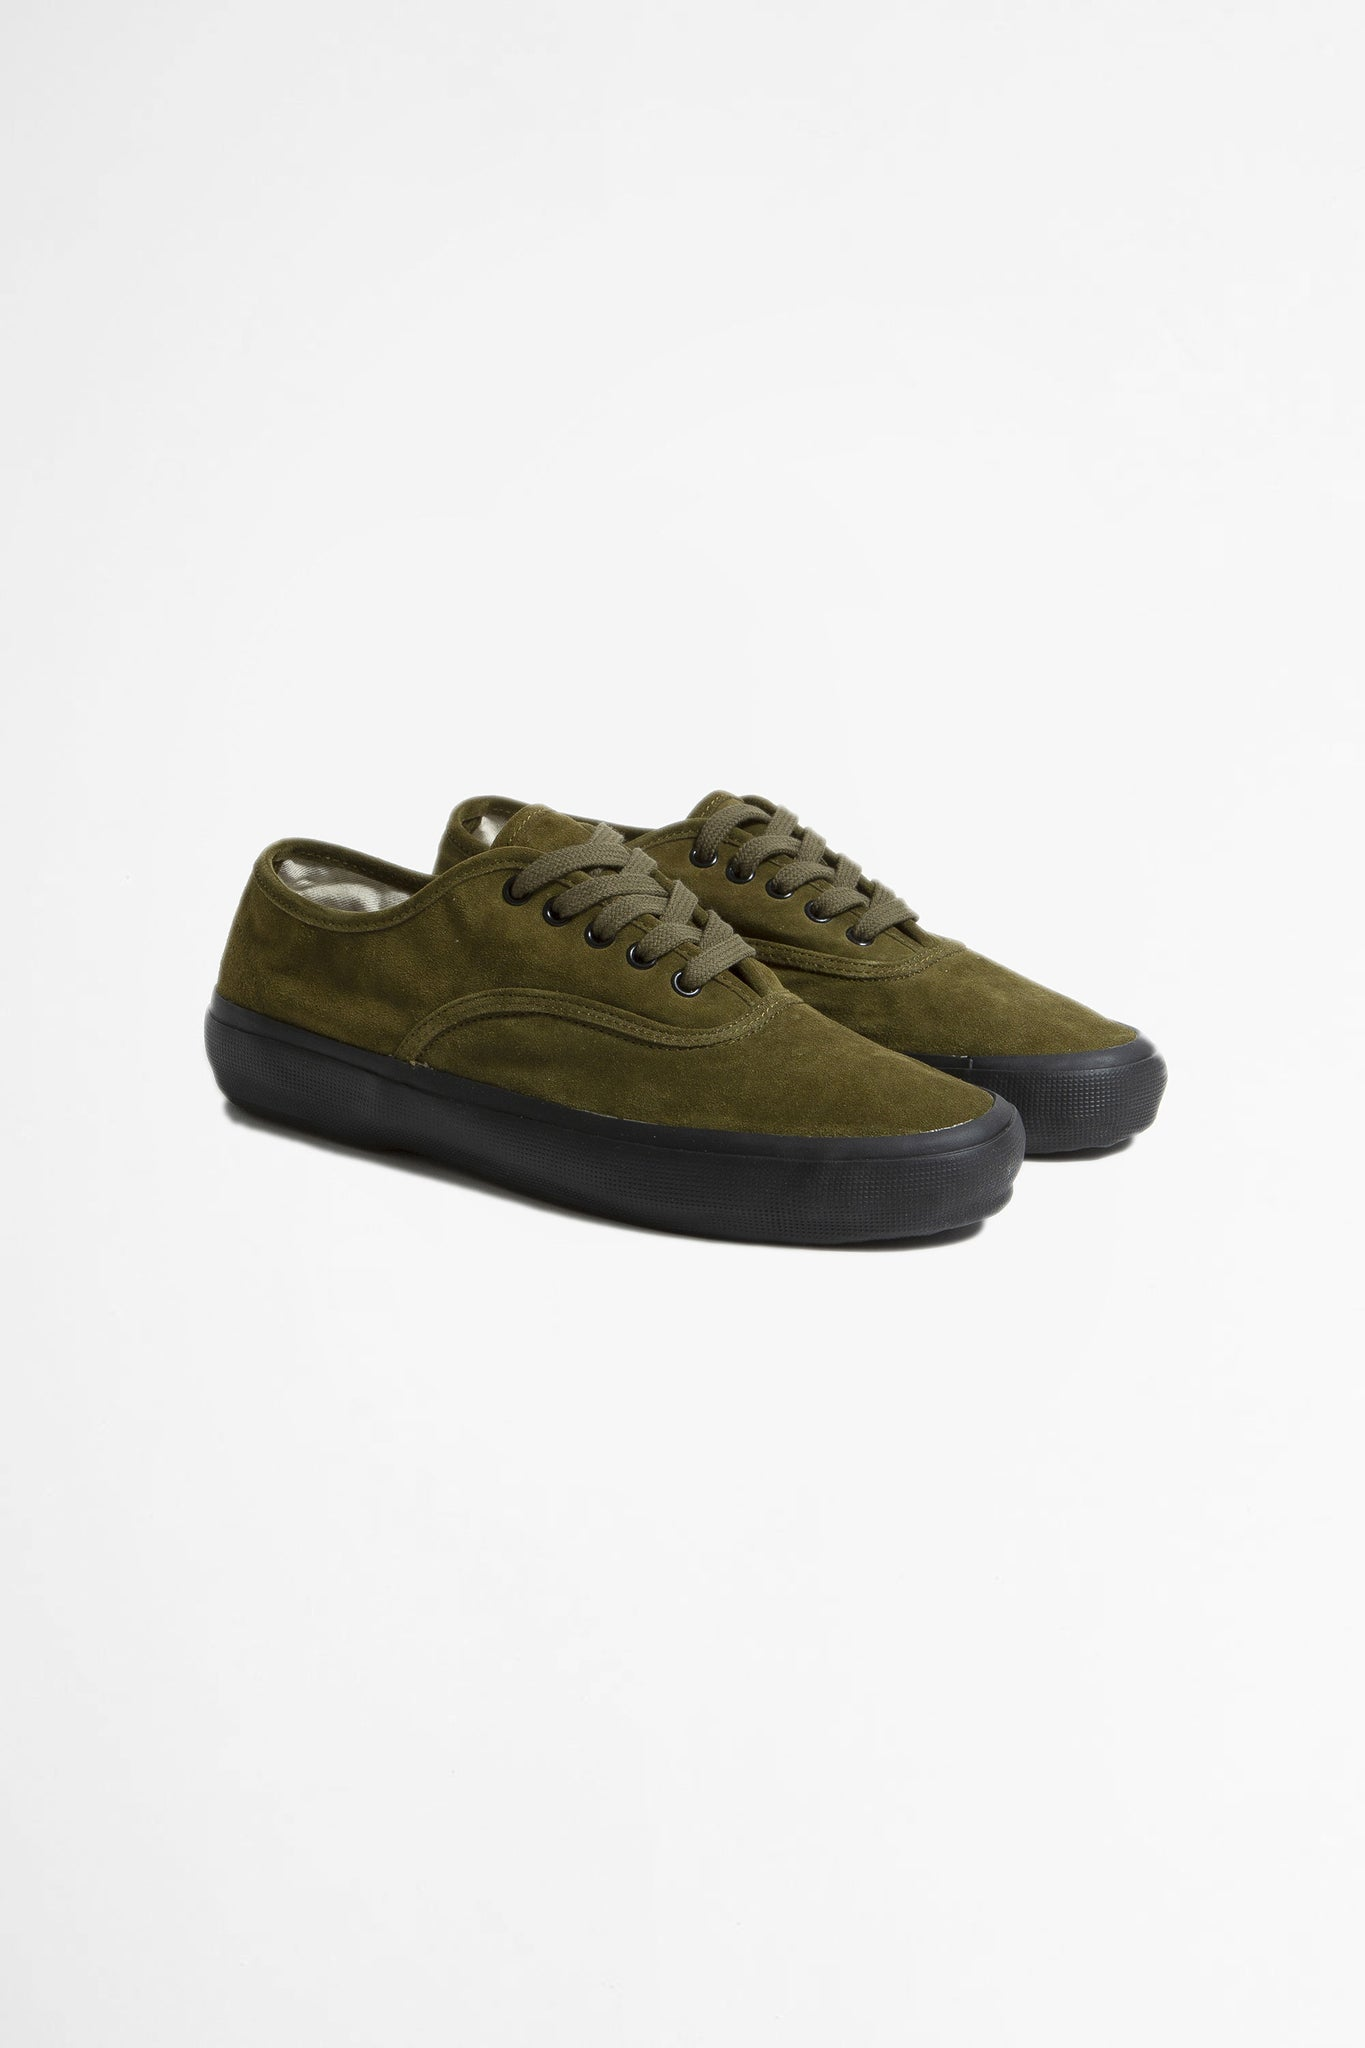 US navy military trainer olive suede with black sole